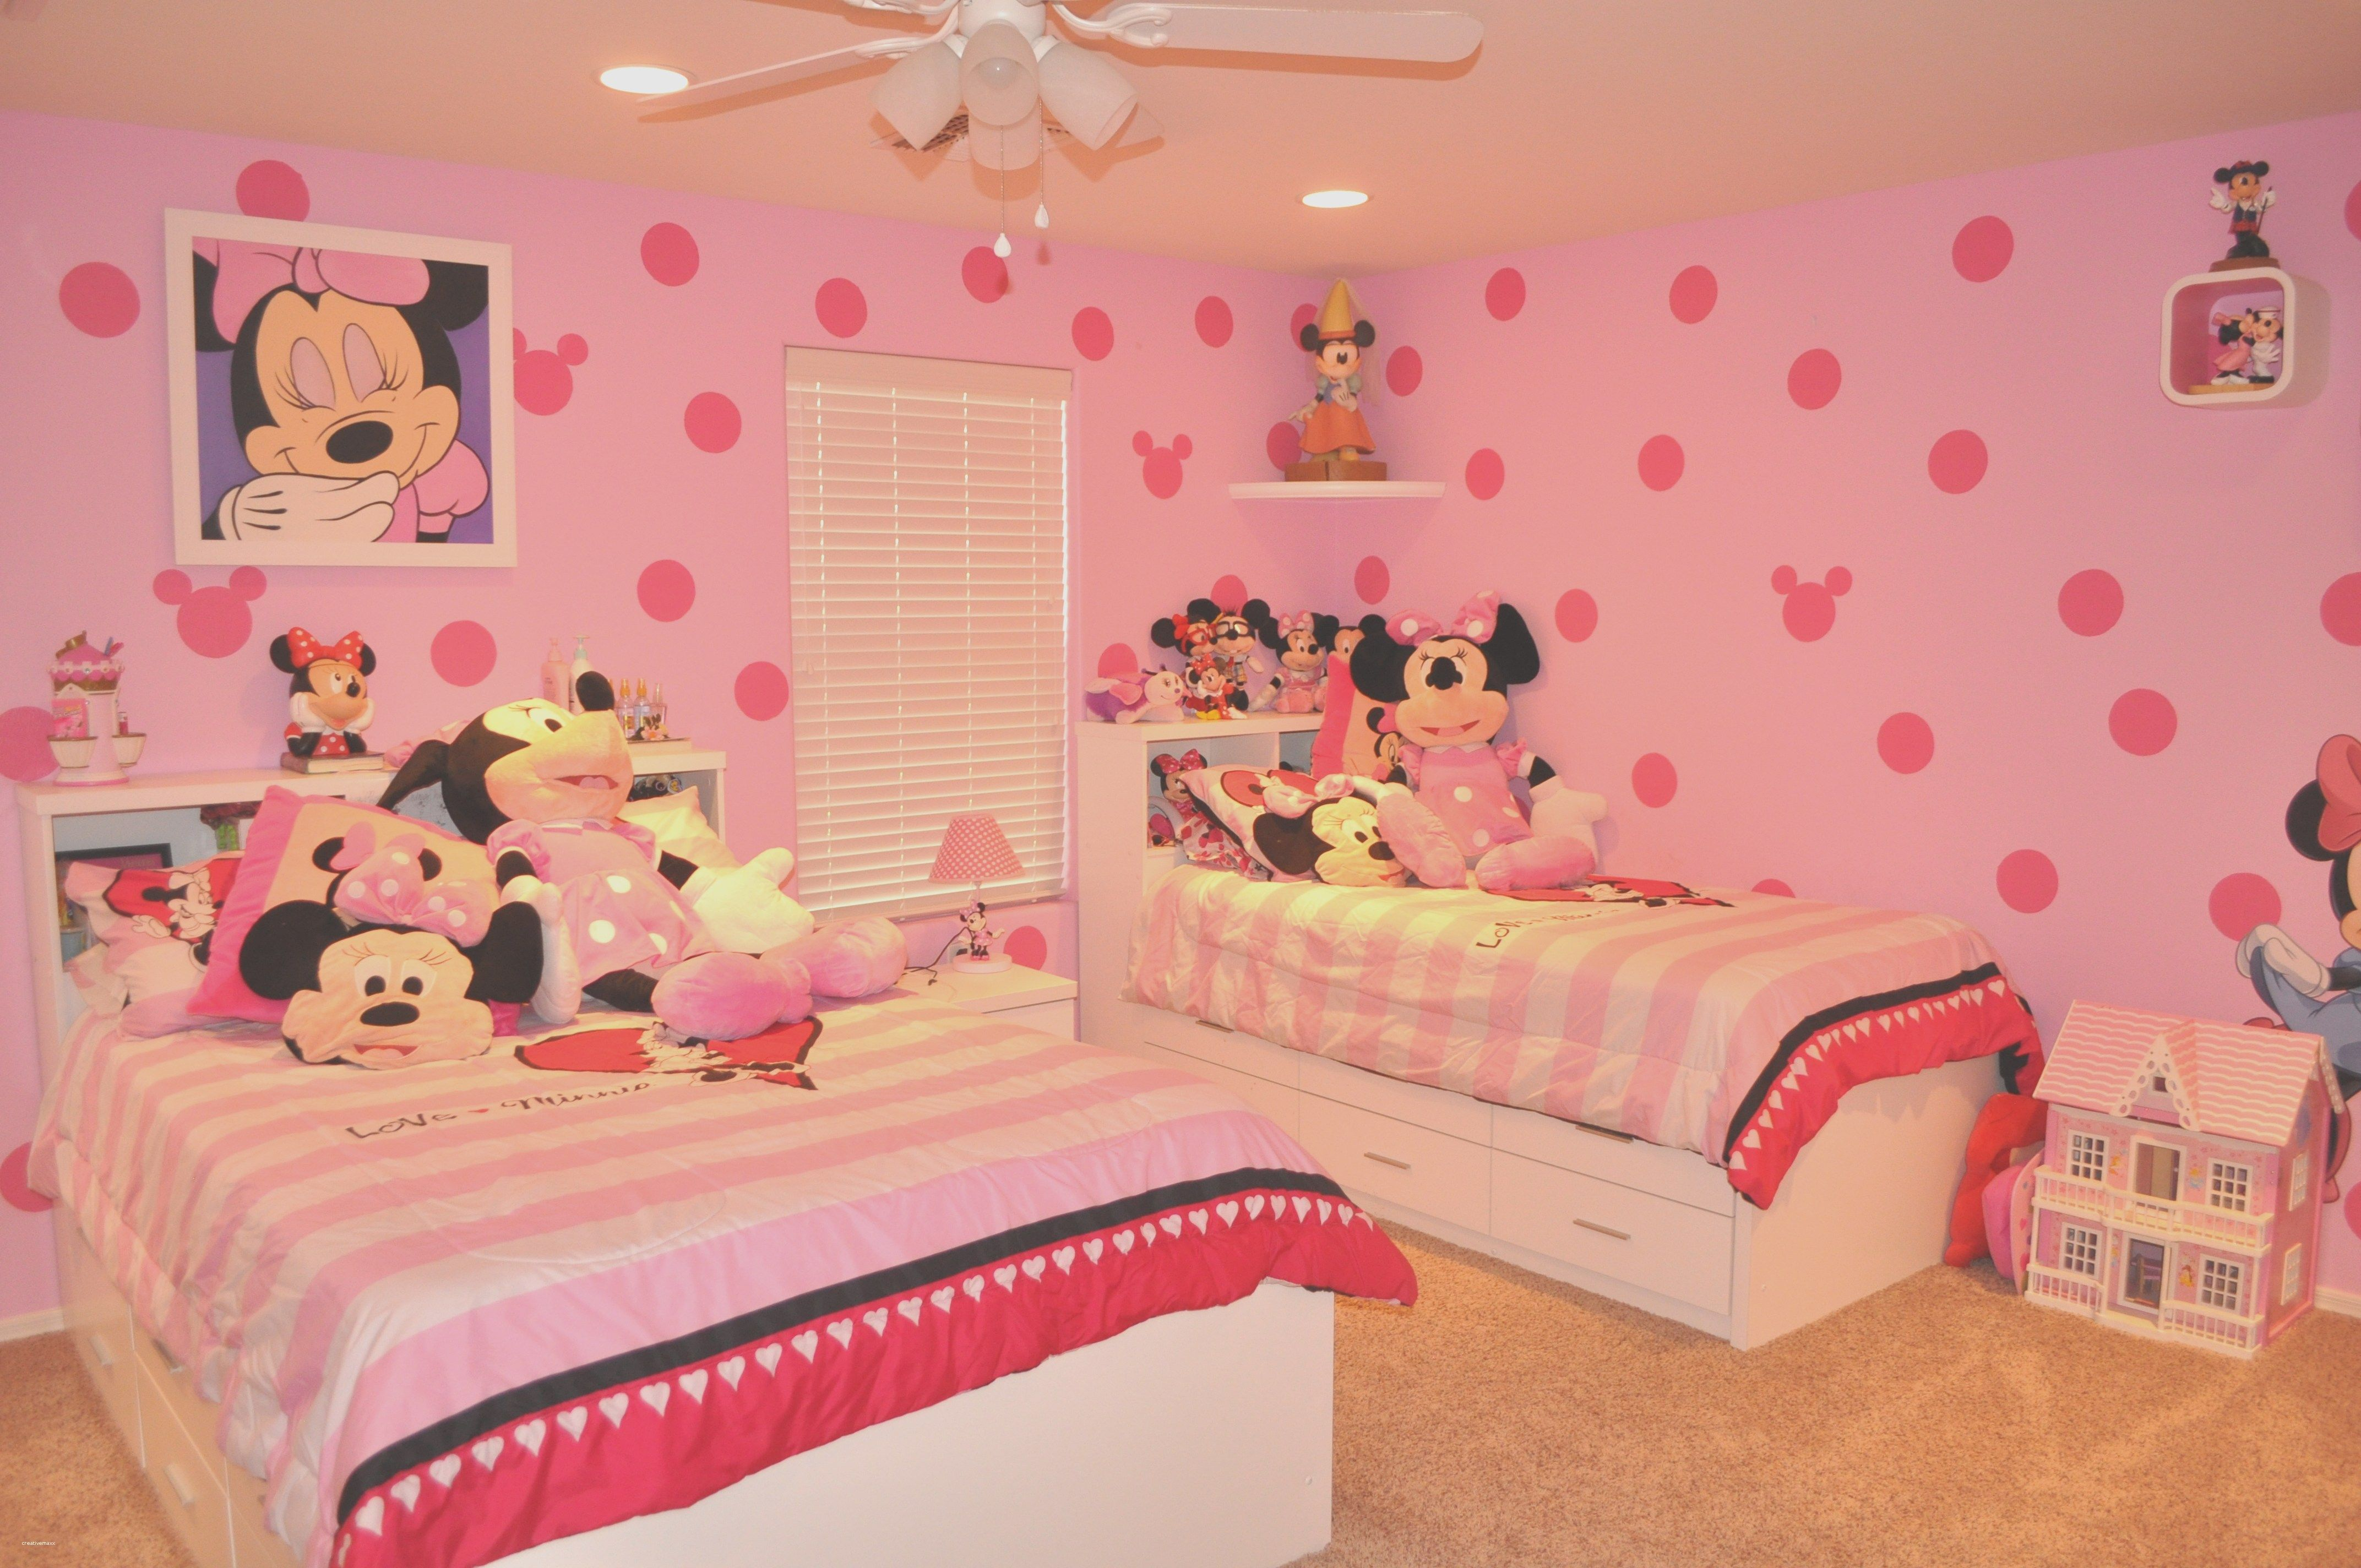 Disney House Decorations Ideas Mickey Mouse New Breathtaking And Minnie Room Decor 76 For